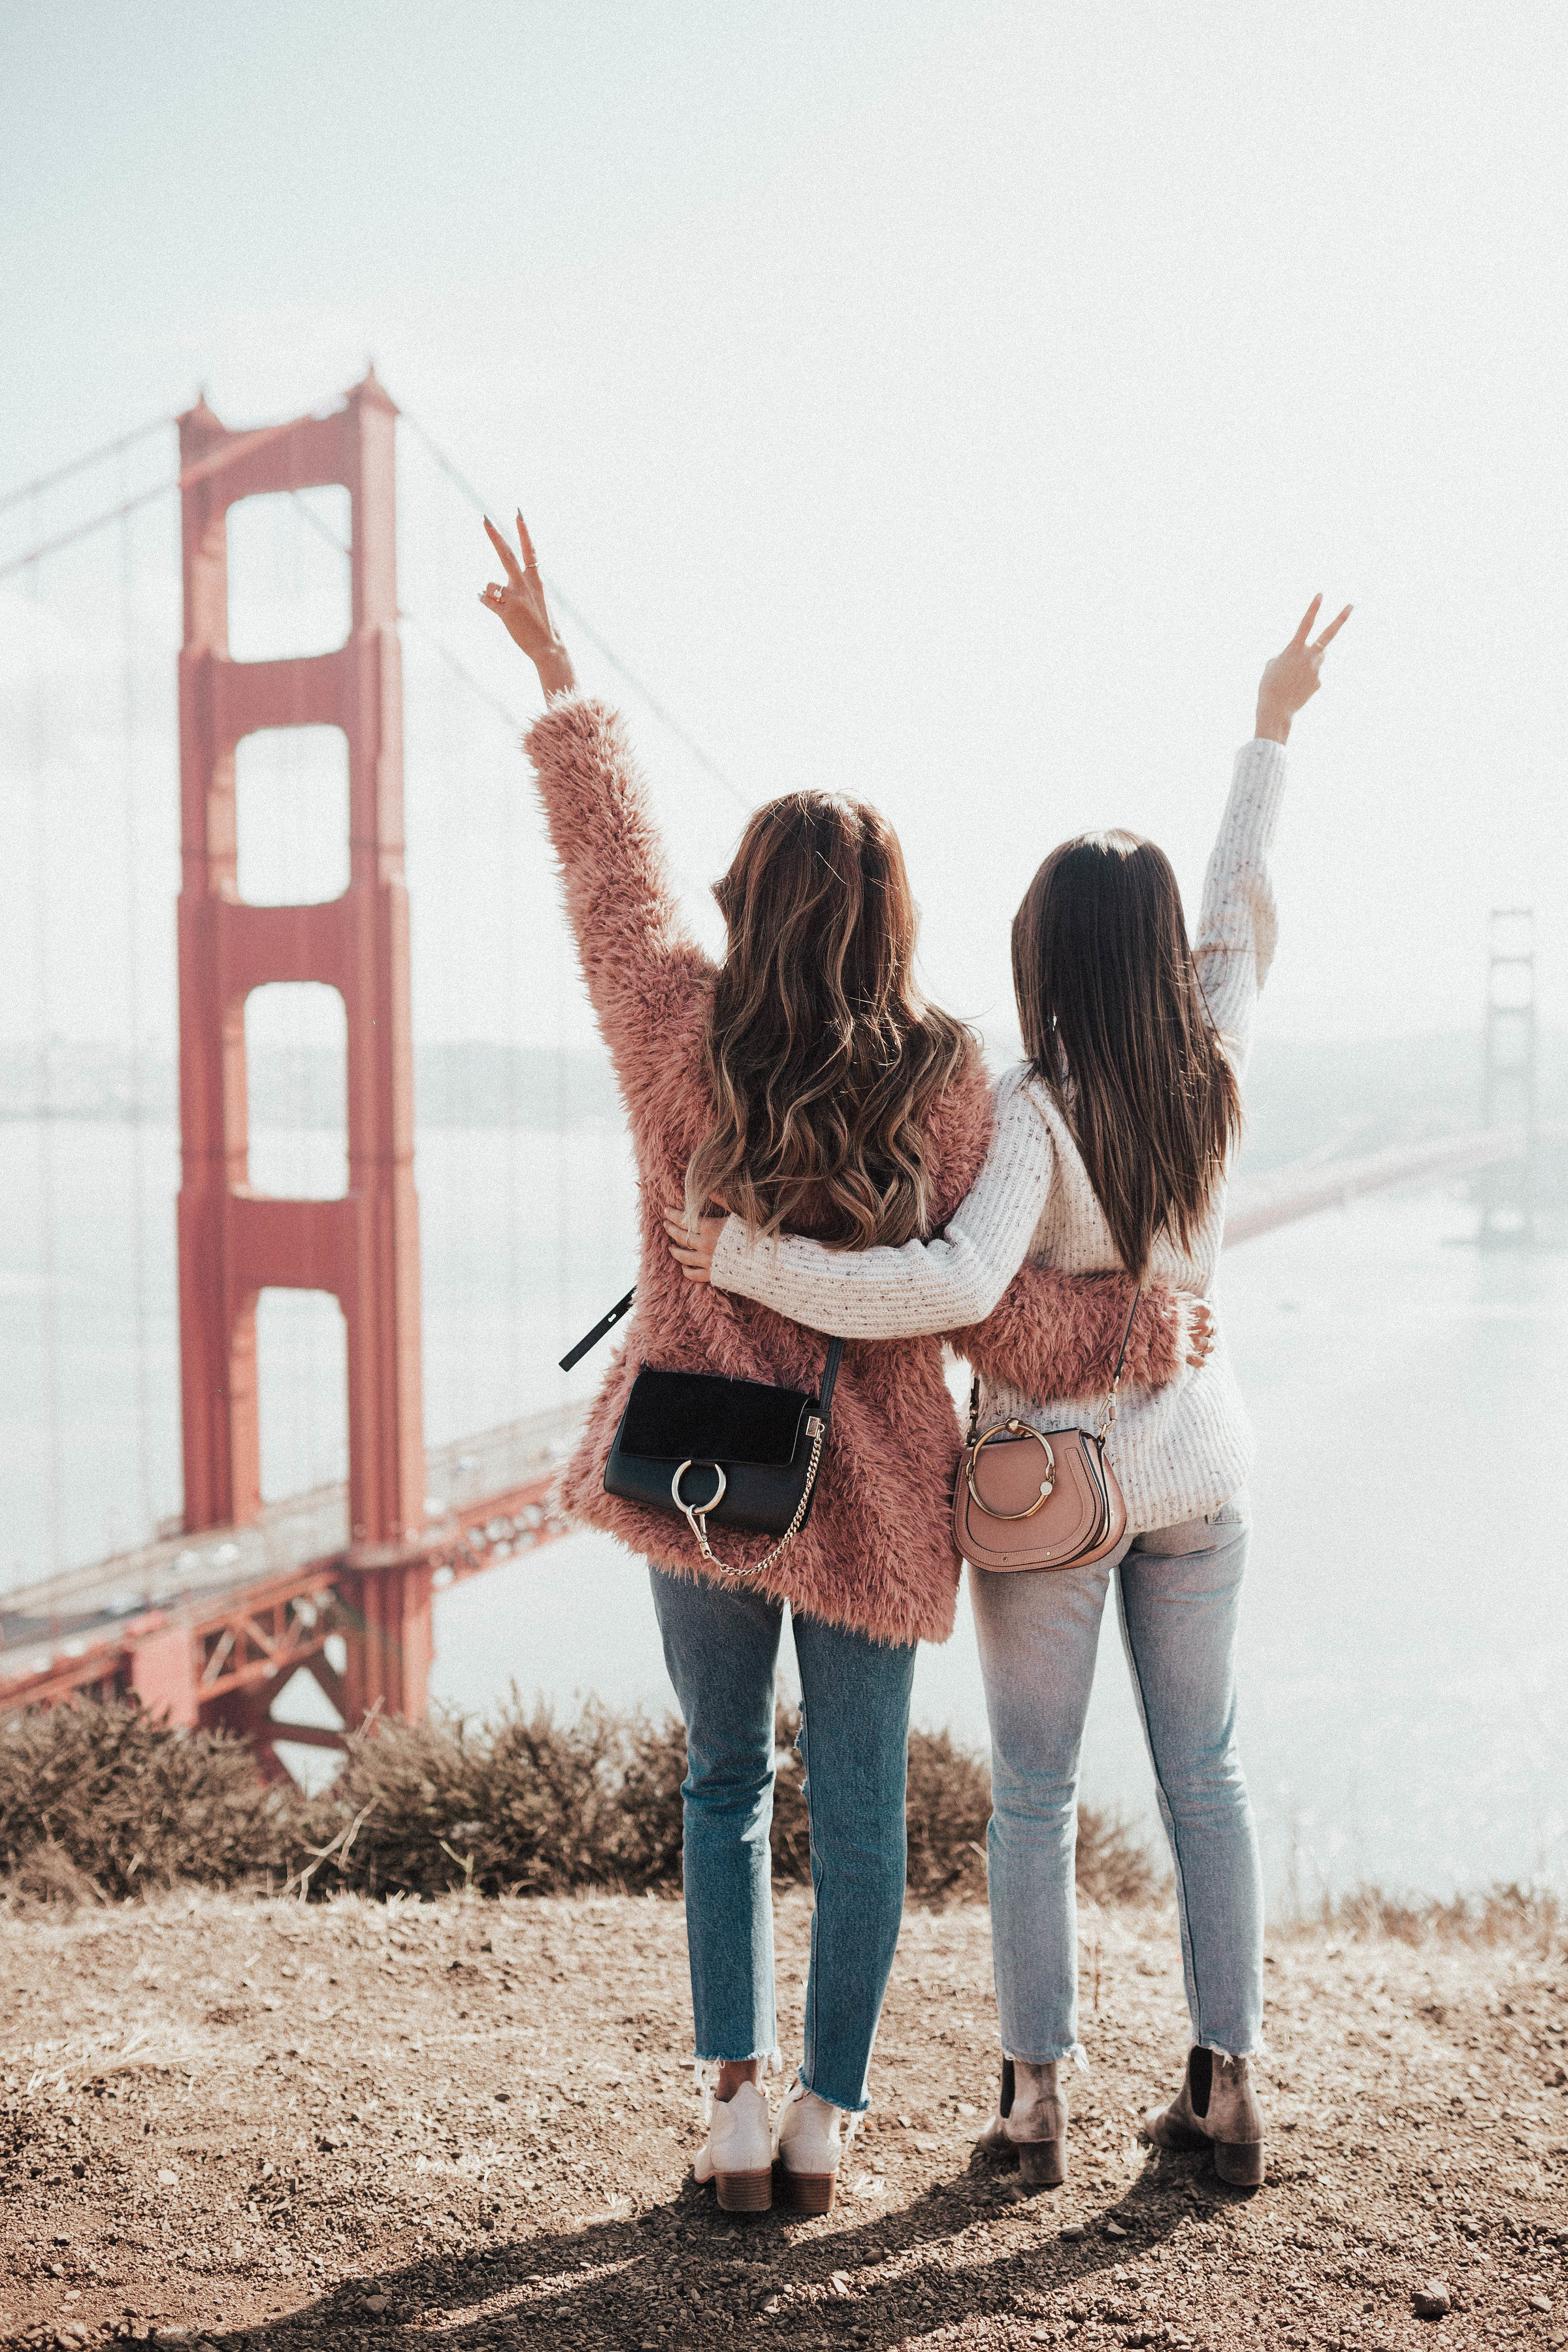 Golden Gate Bridge Photo, san francisco vibes, fuzzy jacket outfit, how to style fuzzy jackets jeans and booties